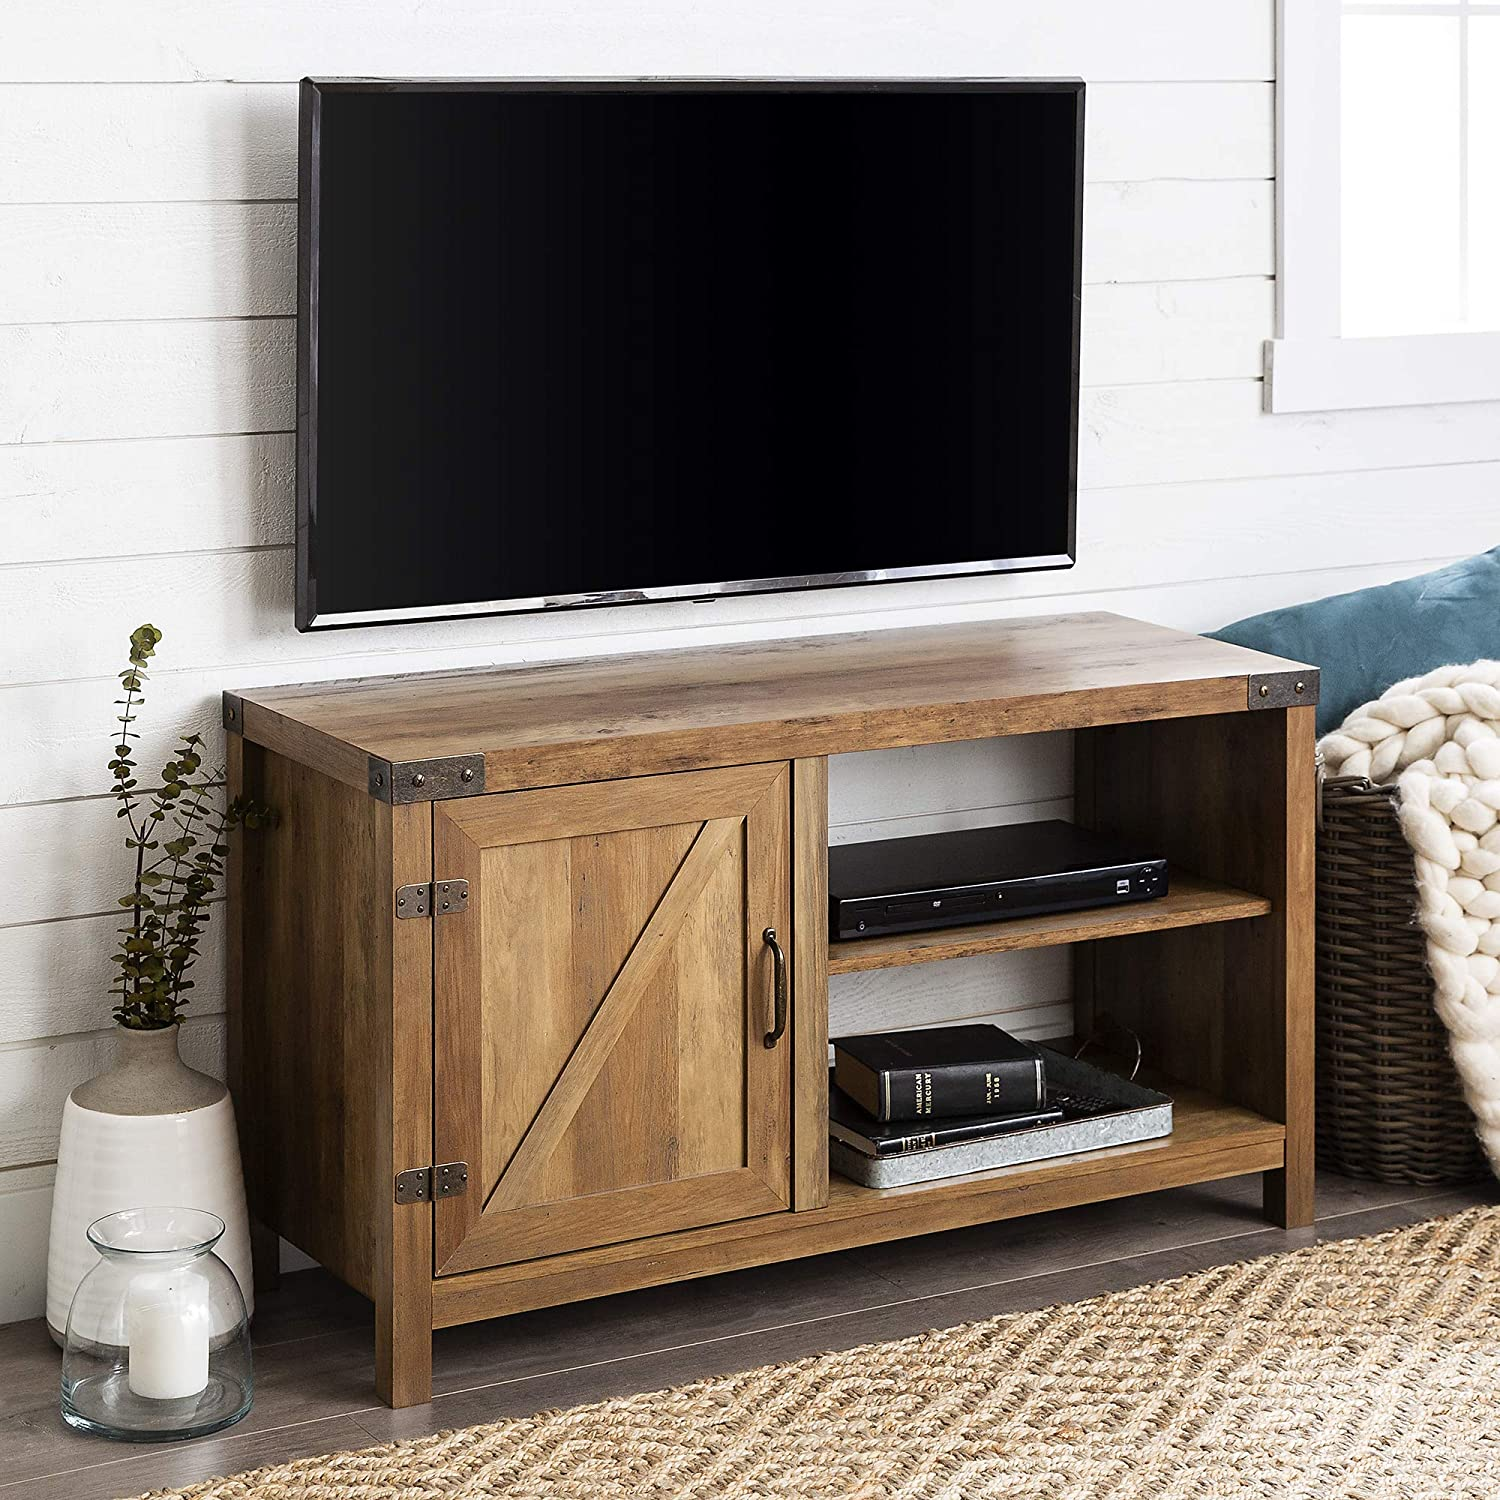 Home Accent Furnishings New 44 Inch Barn Door TV Console with Rustic Oak Finish